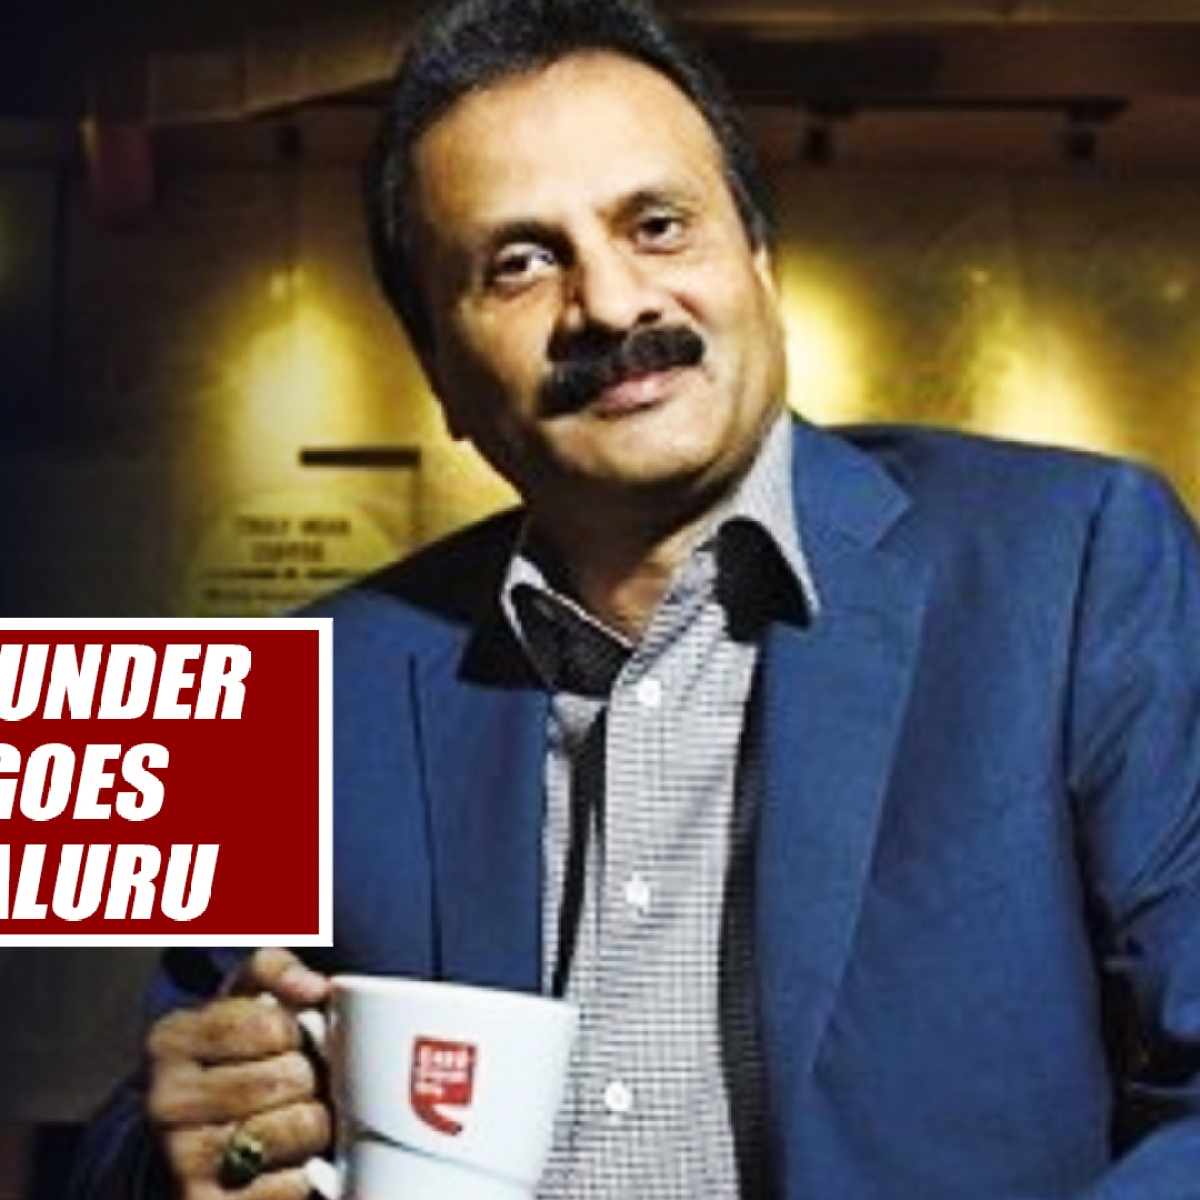 Cafe Coffee Day Founder VG Siddhartha Goes Missing In Mangaluru